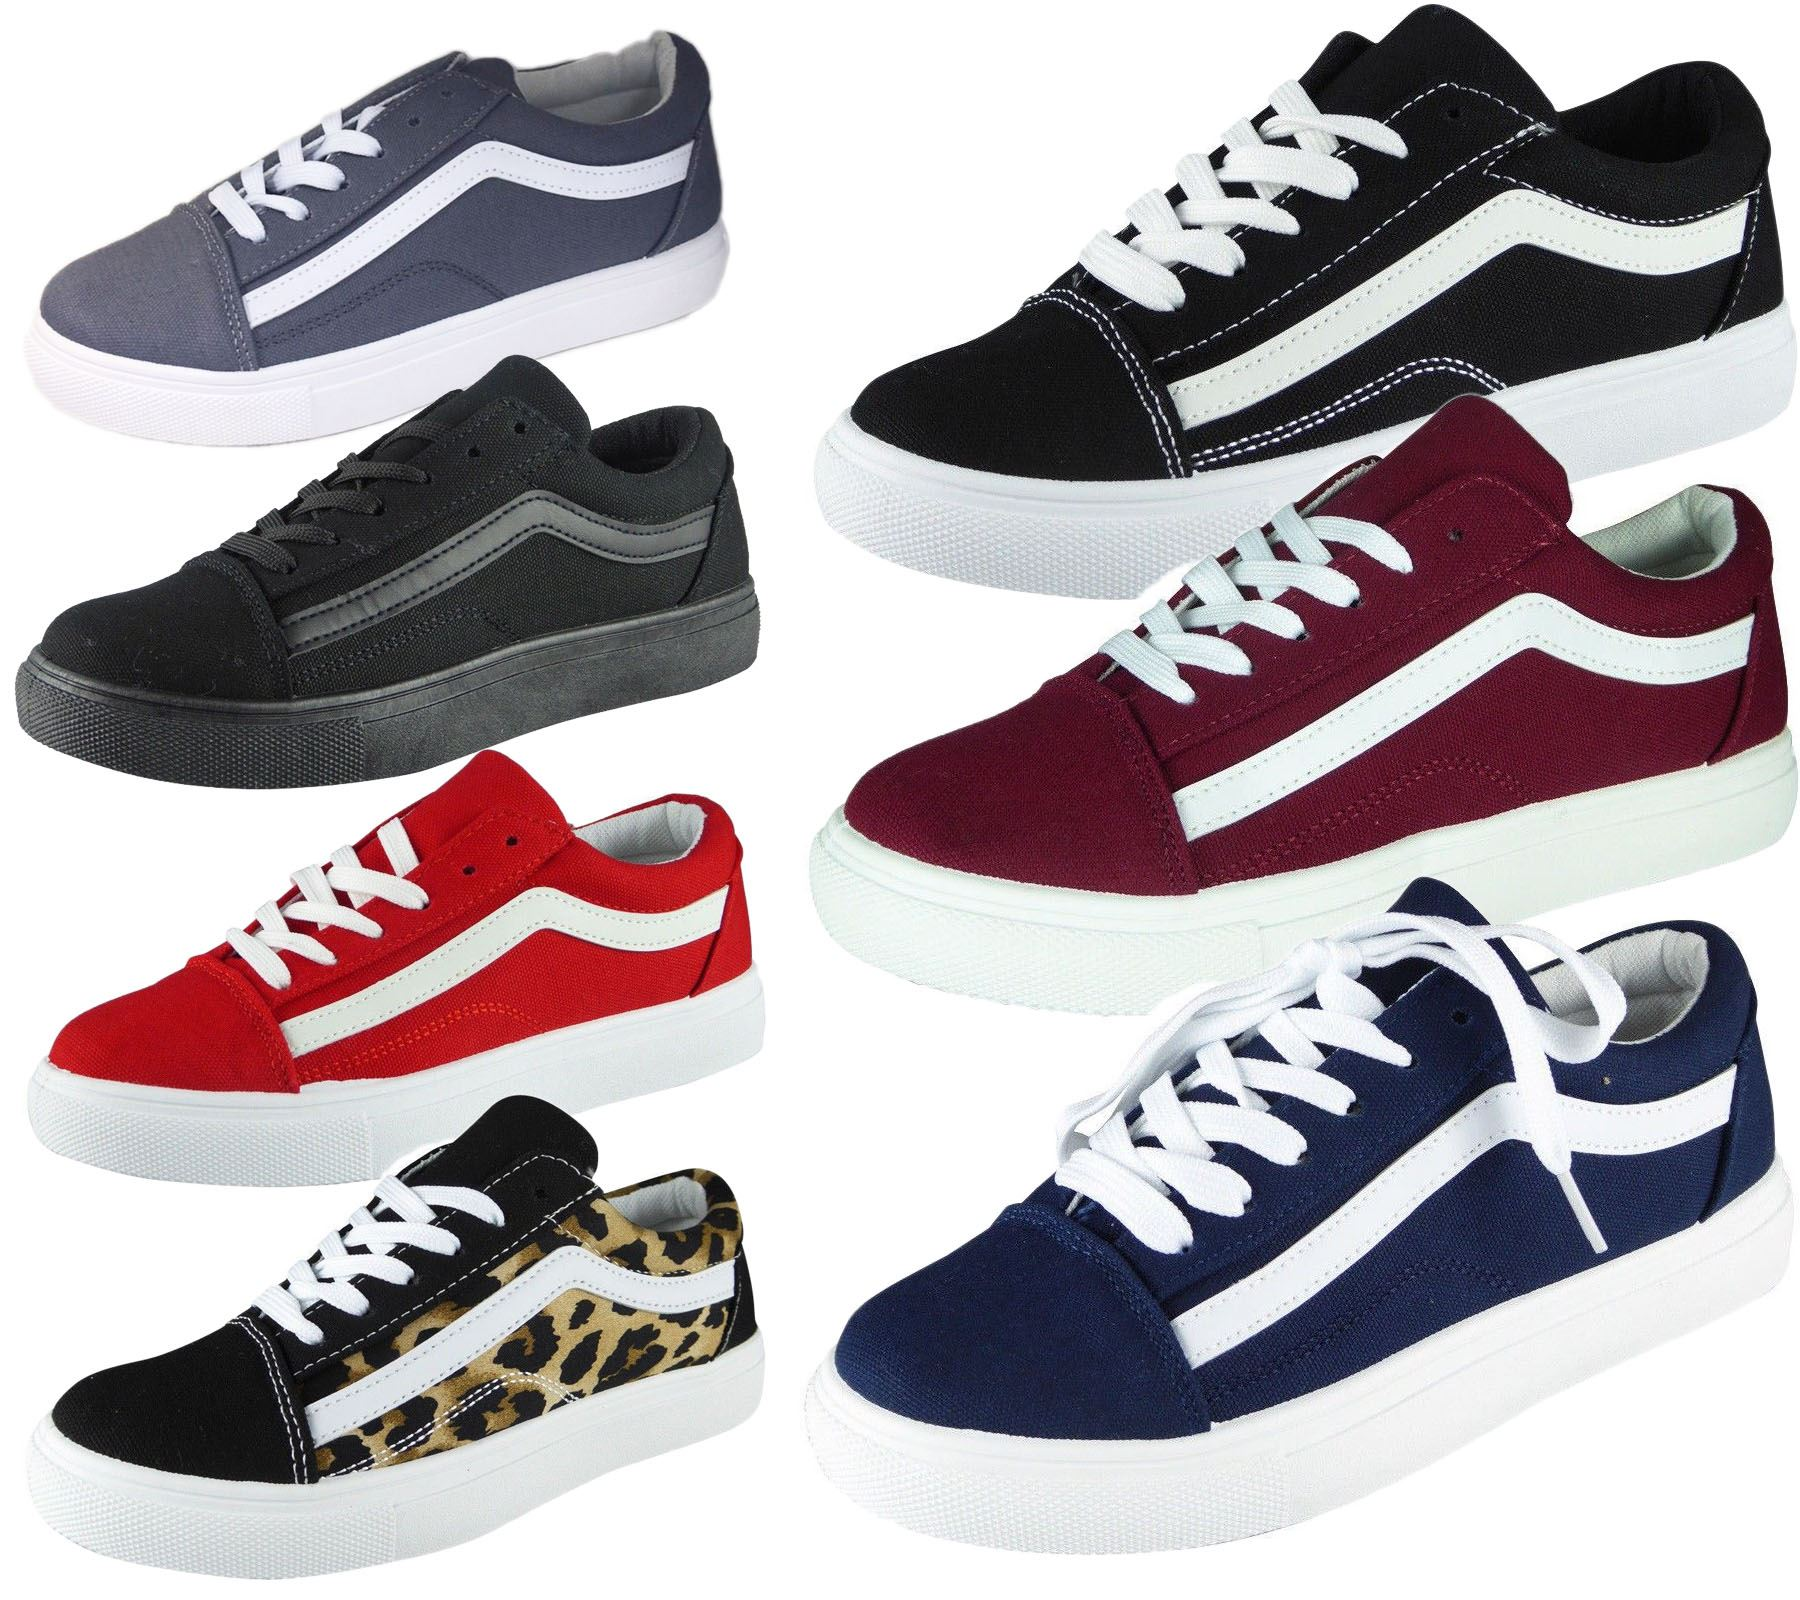 NEW WOMENS LADIES LACE UP FASHION TRAINERS PUMPS SPORTS GYM JOGGING SHOES SIZE